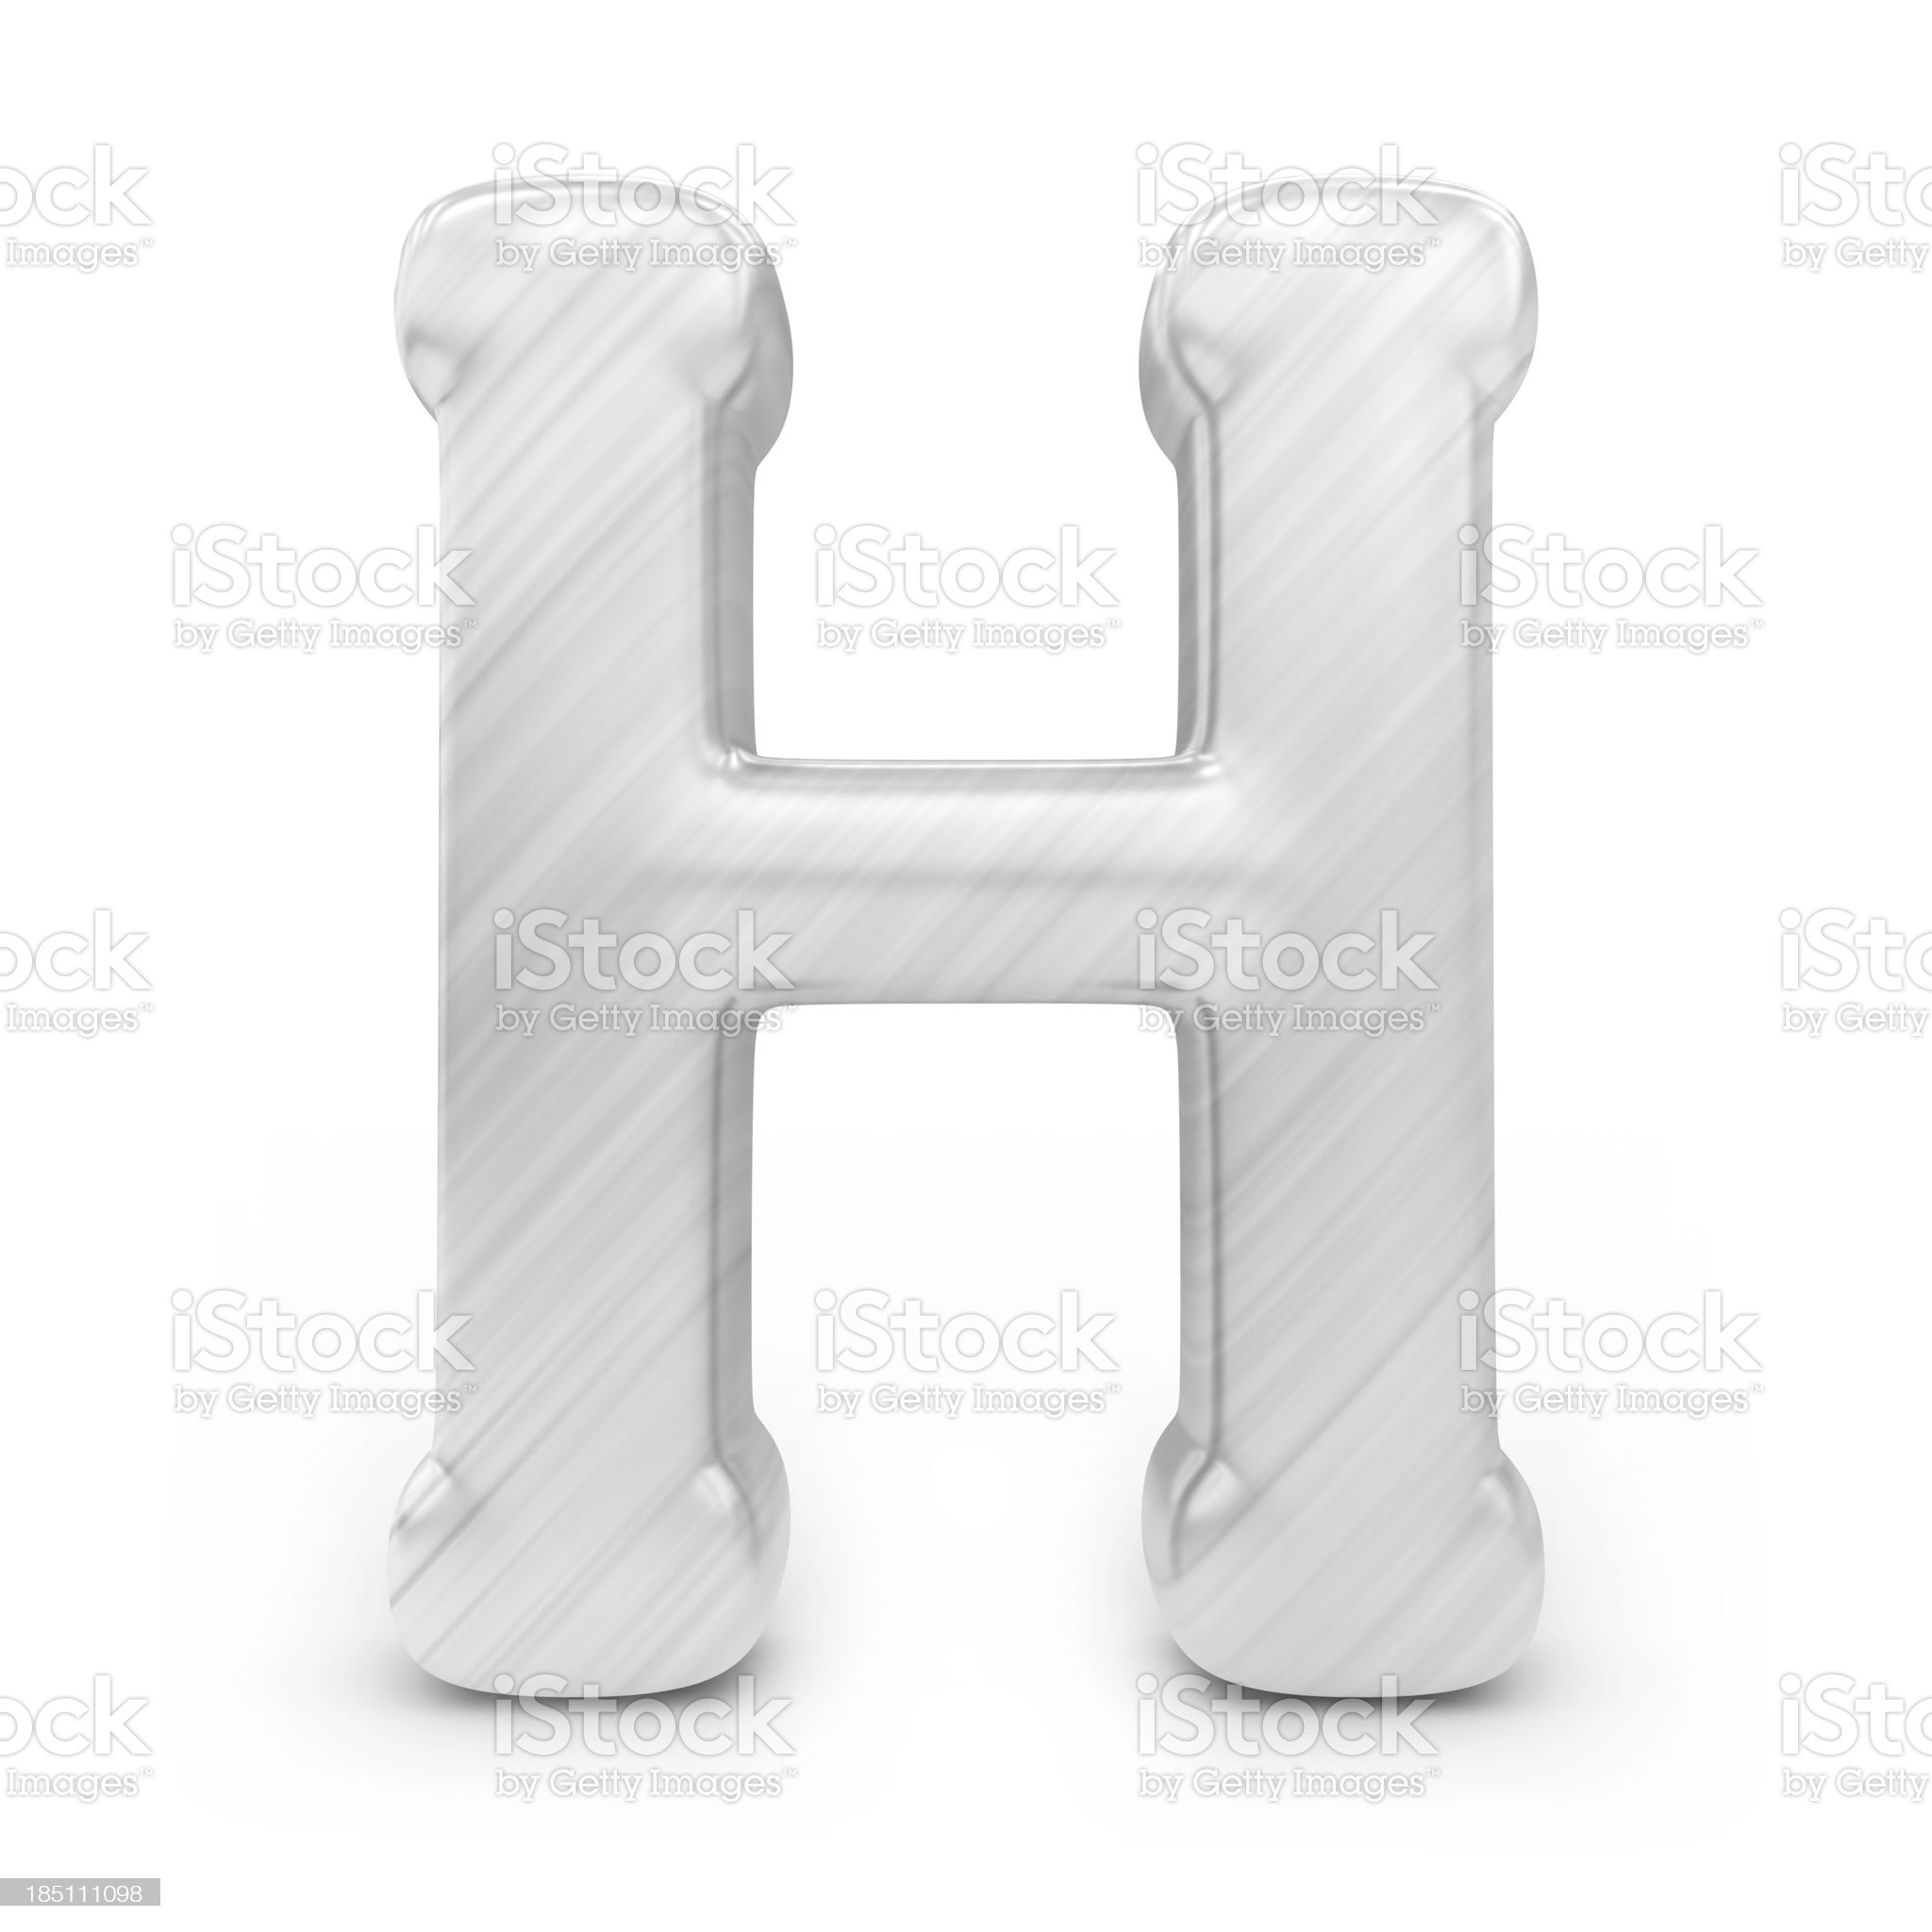 Shiny alphabet - H royalty-free stock photo